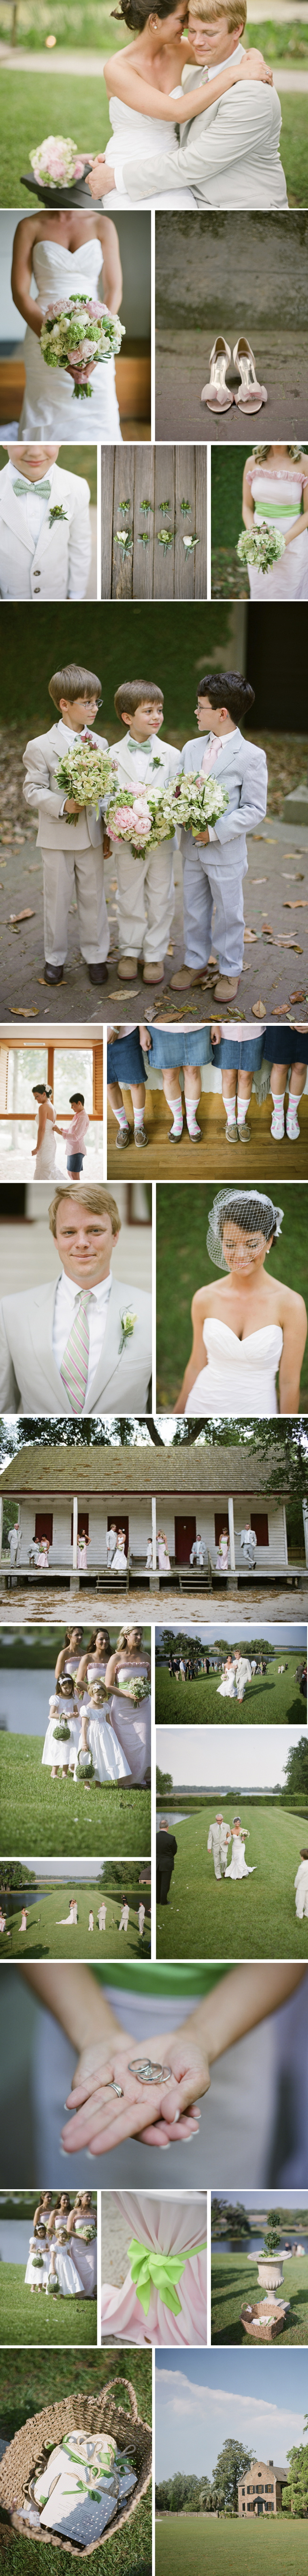 Charleston Weddings | Wedding Blogs